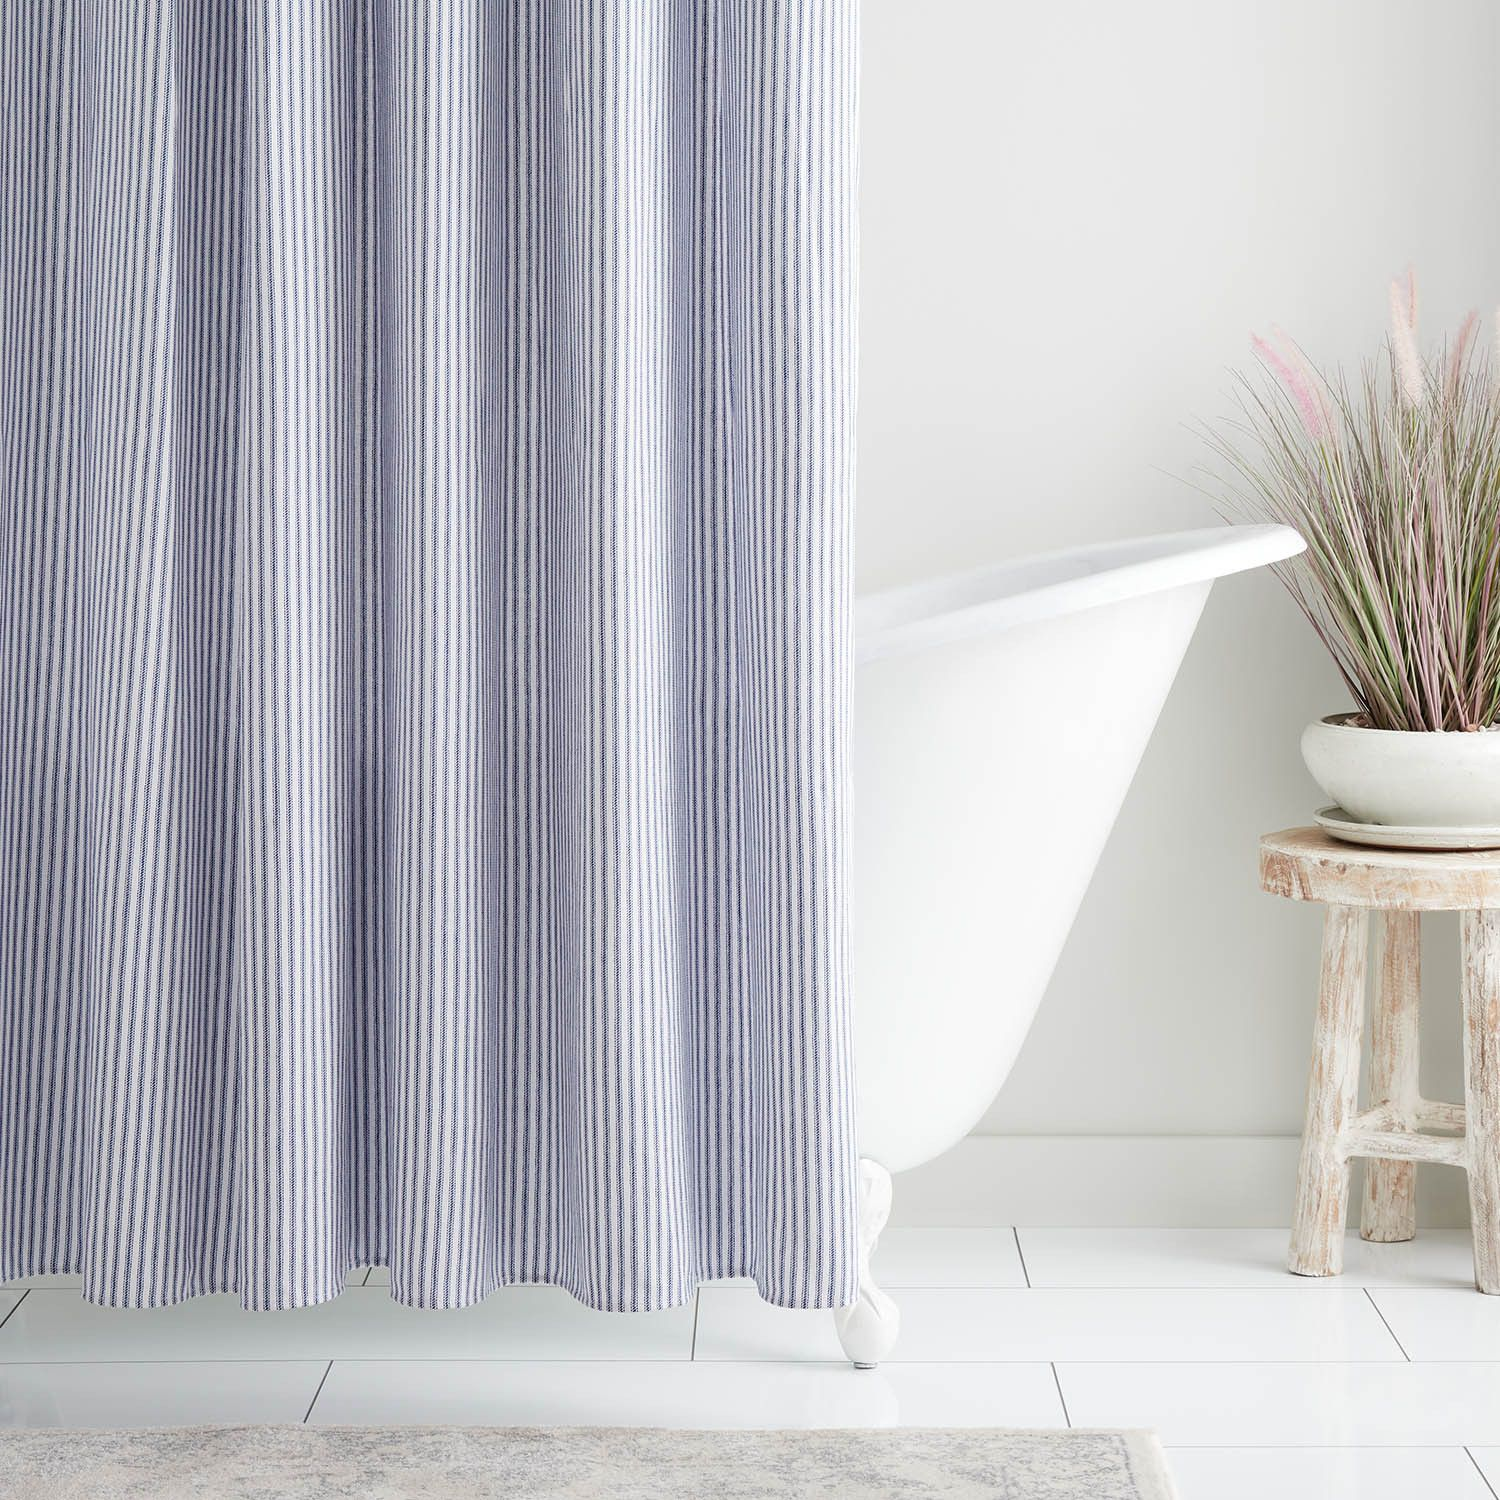 Cotton Shower Curtain Blue Stripe Shower Curtains And Hooks Bathroom In 2020 Striped Shower Curtains Cotton Shower Curtain Shower Curtain